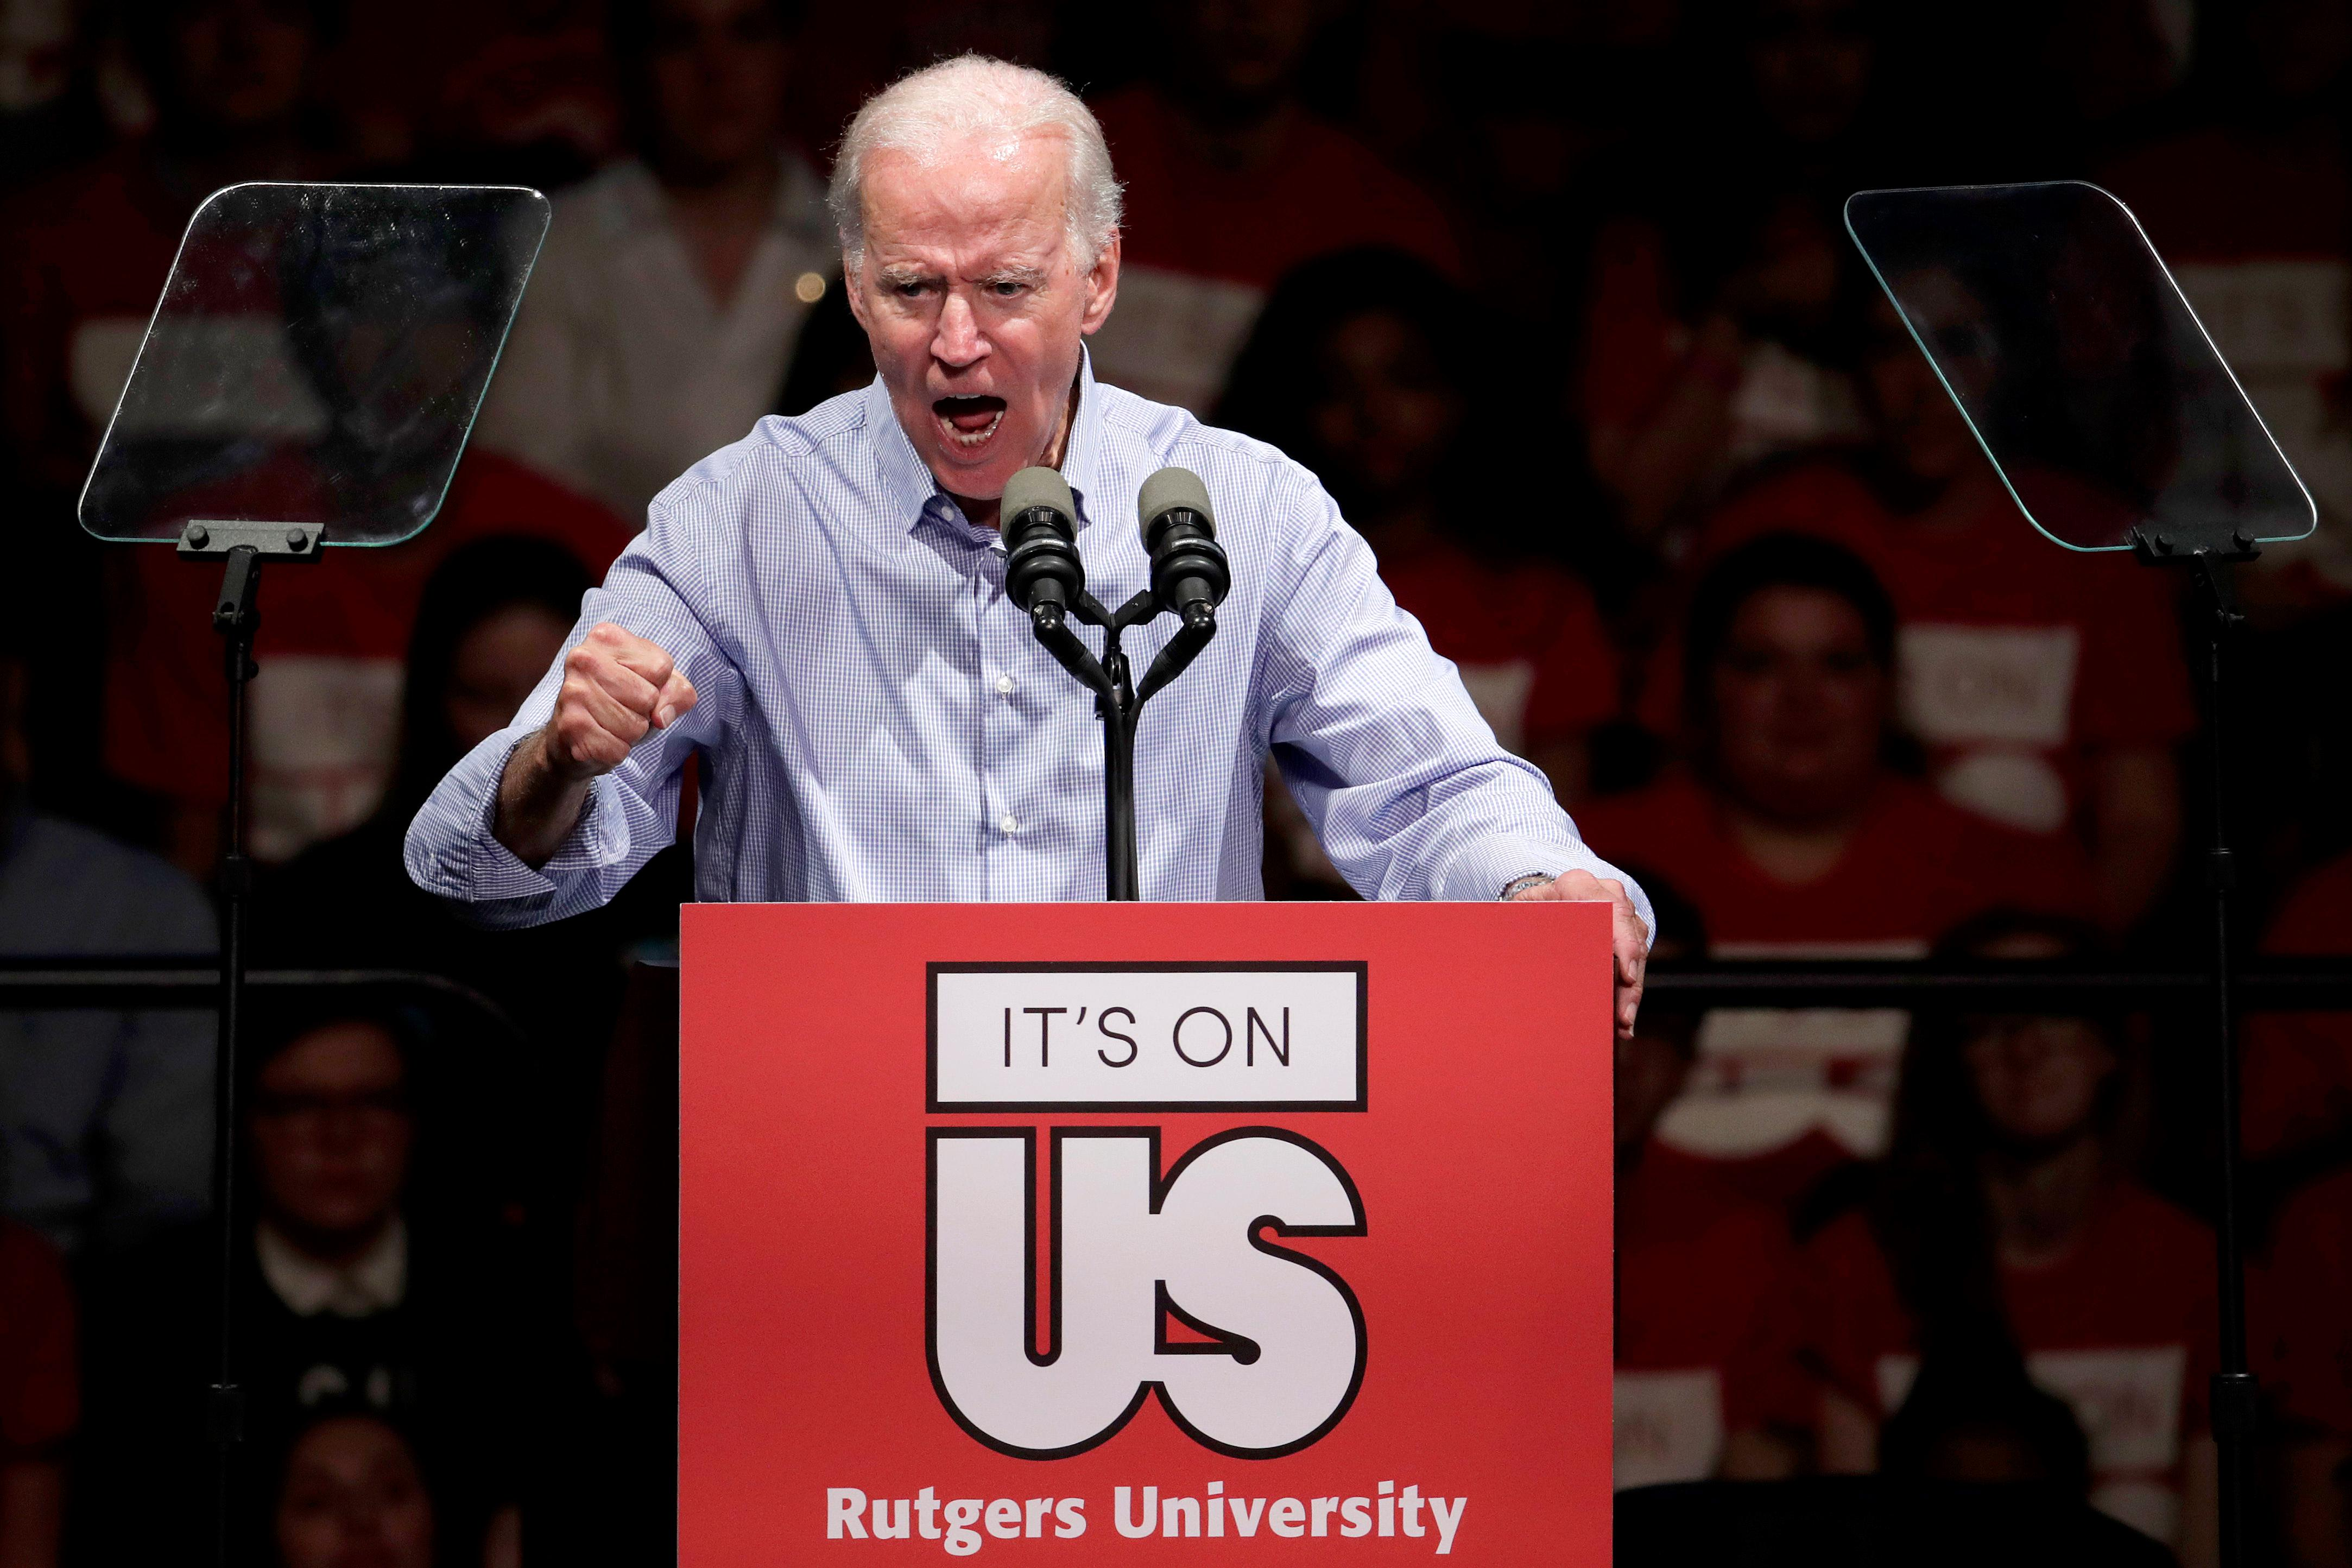 Former U.S. Vice President Joe Biden delivers remarks regarding sexual violence on college campuses during a visit to Rutgers University, Thursday, Oct. 12, 2017, in New Brunswick, N.J. (AP Photo/Julio Cortez)